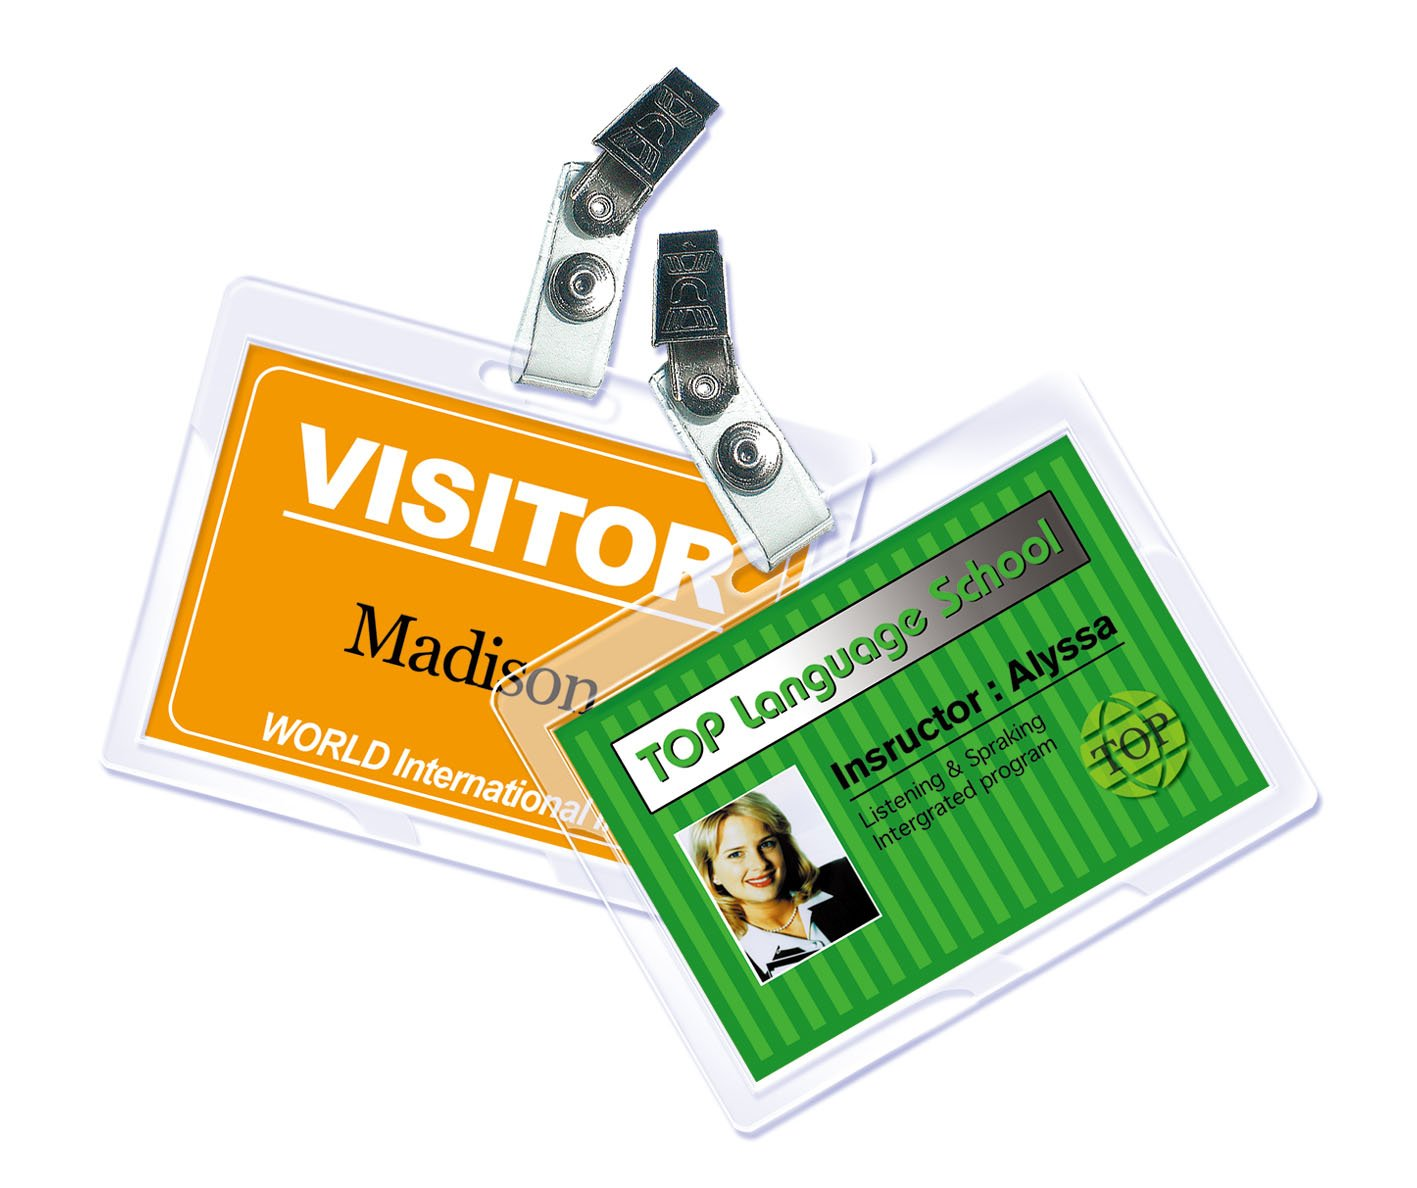 Royal Sovereign Heat Sealed Laminating Pouches 5 Mil ID Badge Size Punched with Clips Clear Gloss (25 Pack) (RF05IDPC0025) Royal Sovereign Intl. Inc. Office Equipment